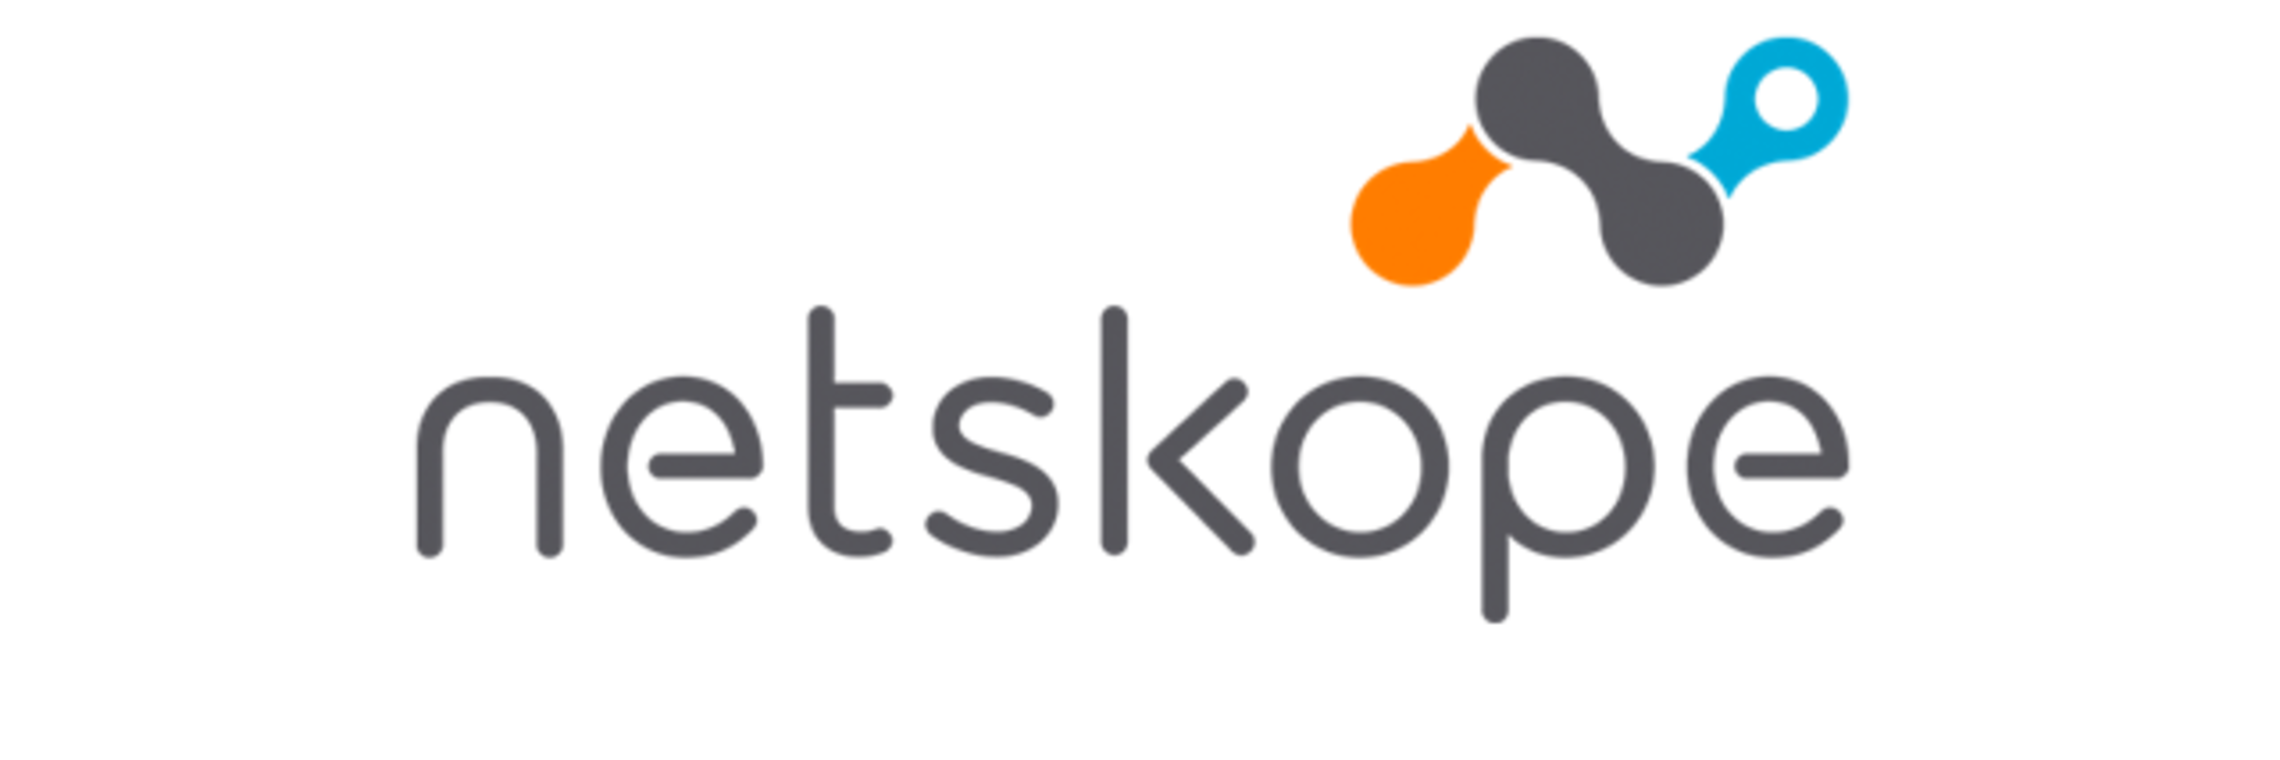 Netskope Industry Insight Logo